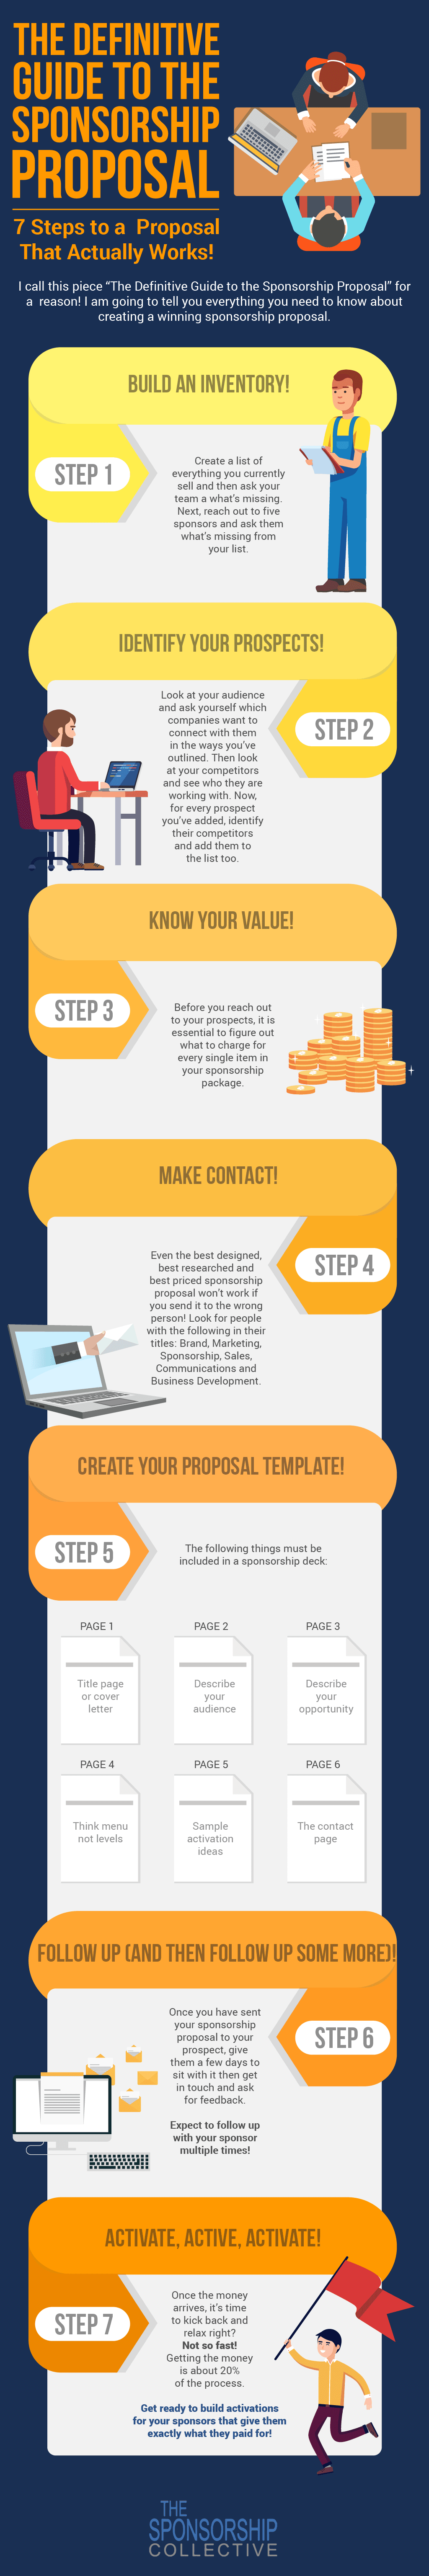 The Definitive Guide To The Sponsorship Proposal 7 Steps To A